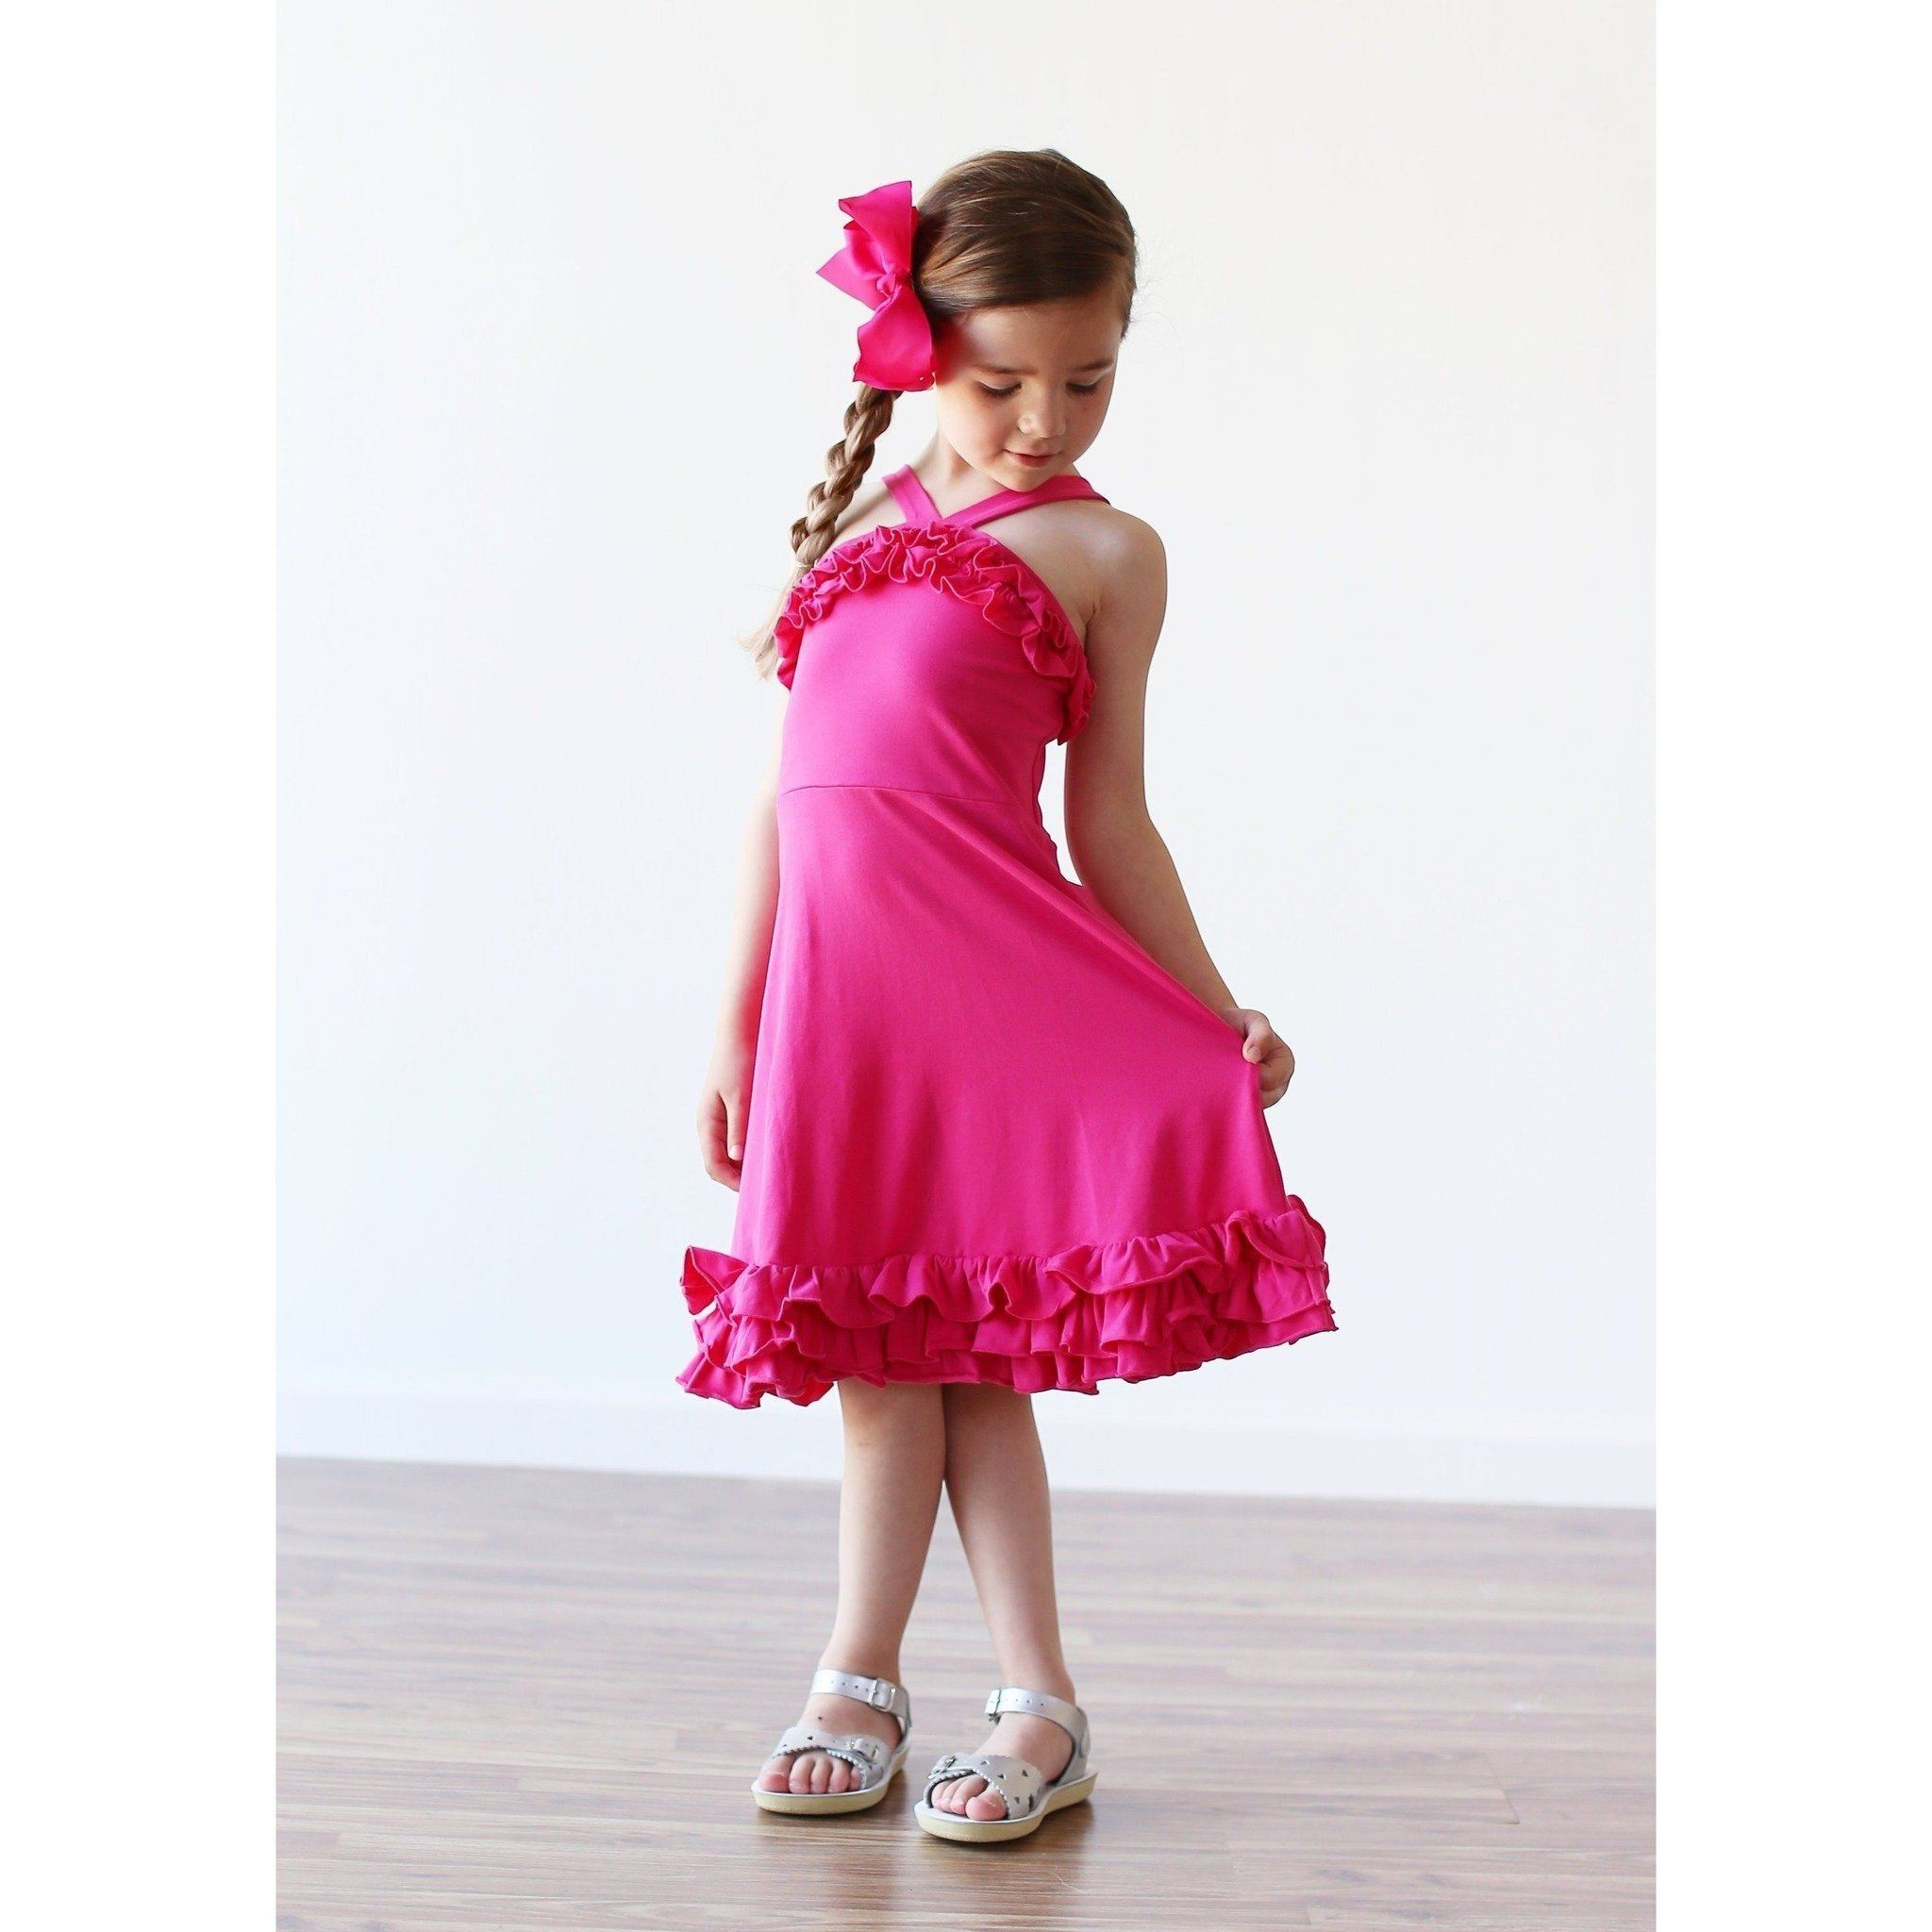 Adorable Essentials, Willa Dress - bright pink,Dresses,Adorable Essentials, LLC